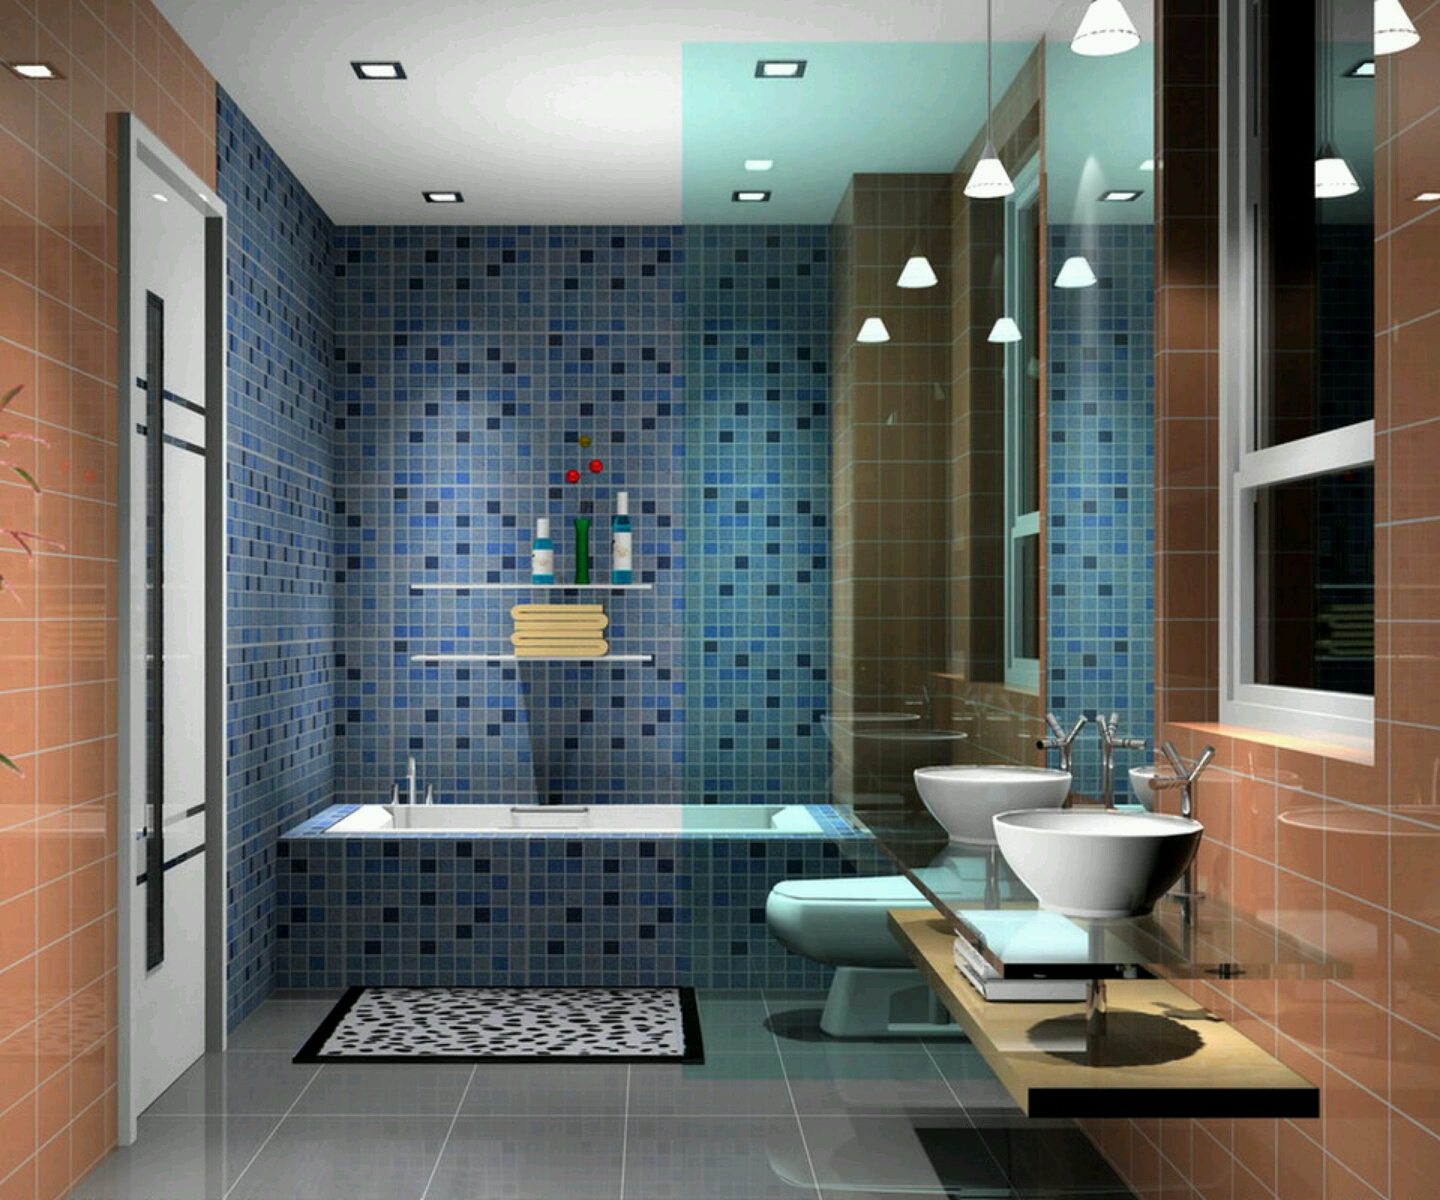 Modern bathrooms best designs ideas modern home designs for Designs for bathroom tile